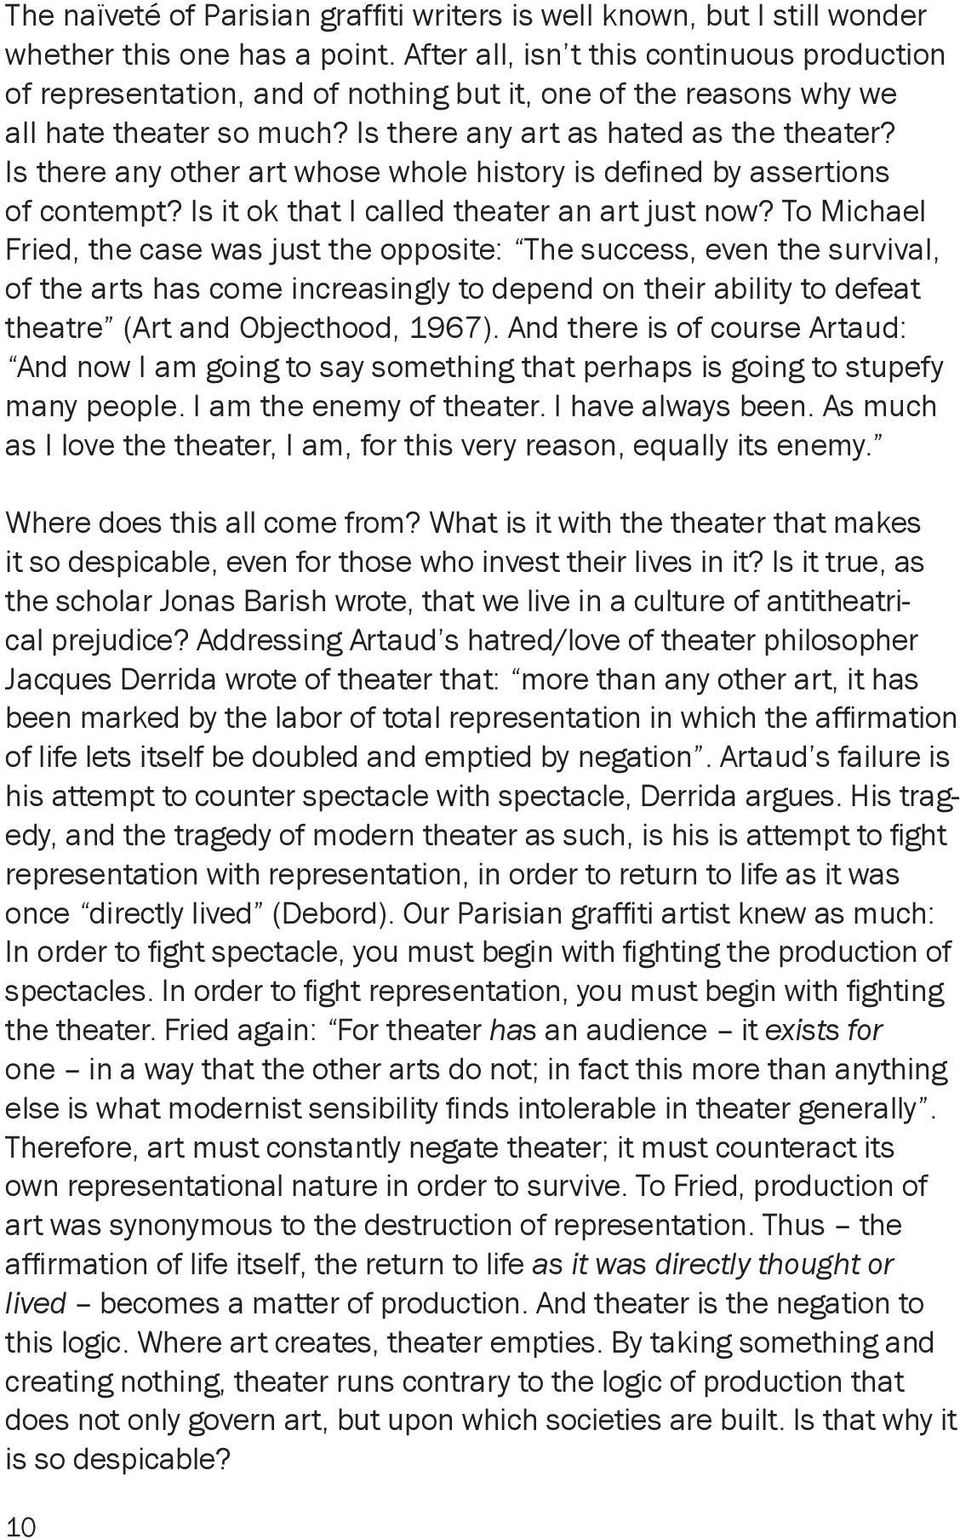 Is there any other art whose whole history is defined by assertions of contempt? Is it ok that I called theater an art just now?